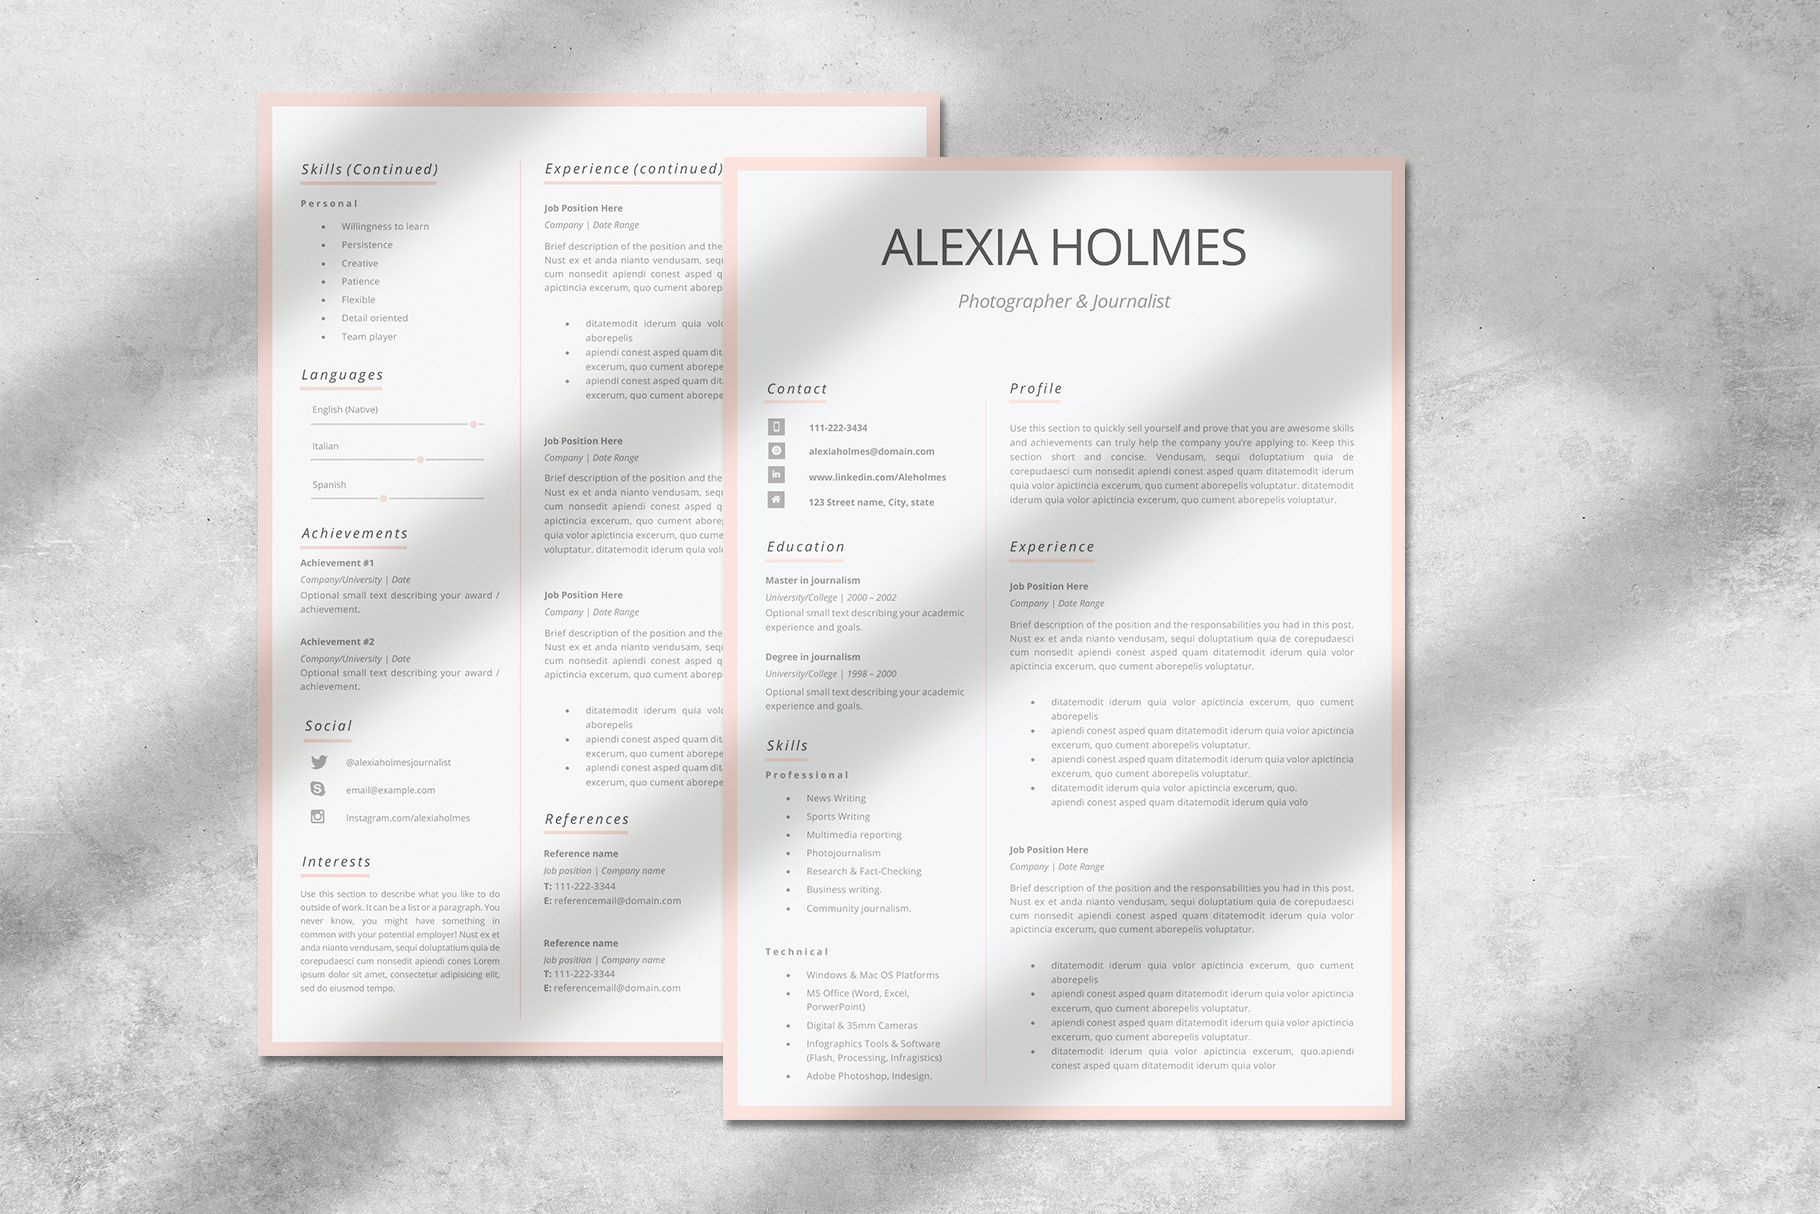 Creative Resume Templates For Ms Word And Mac Pages Professional Resume Templates And Matchi Resume Cover Letter Examples Modern Resume Design Creative Resume